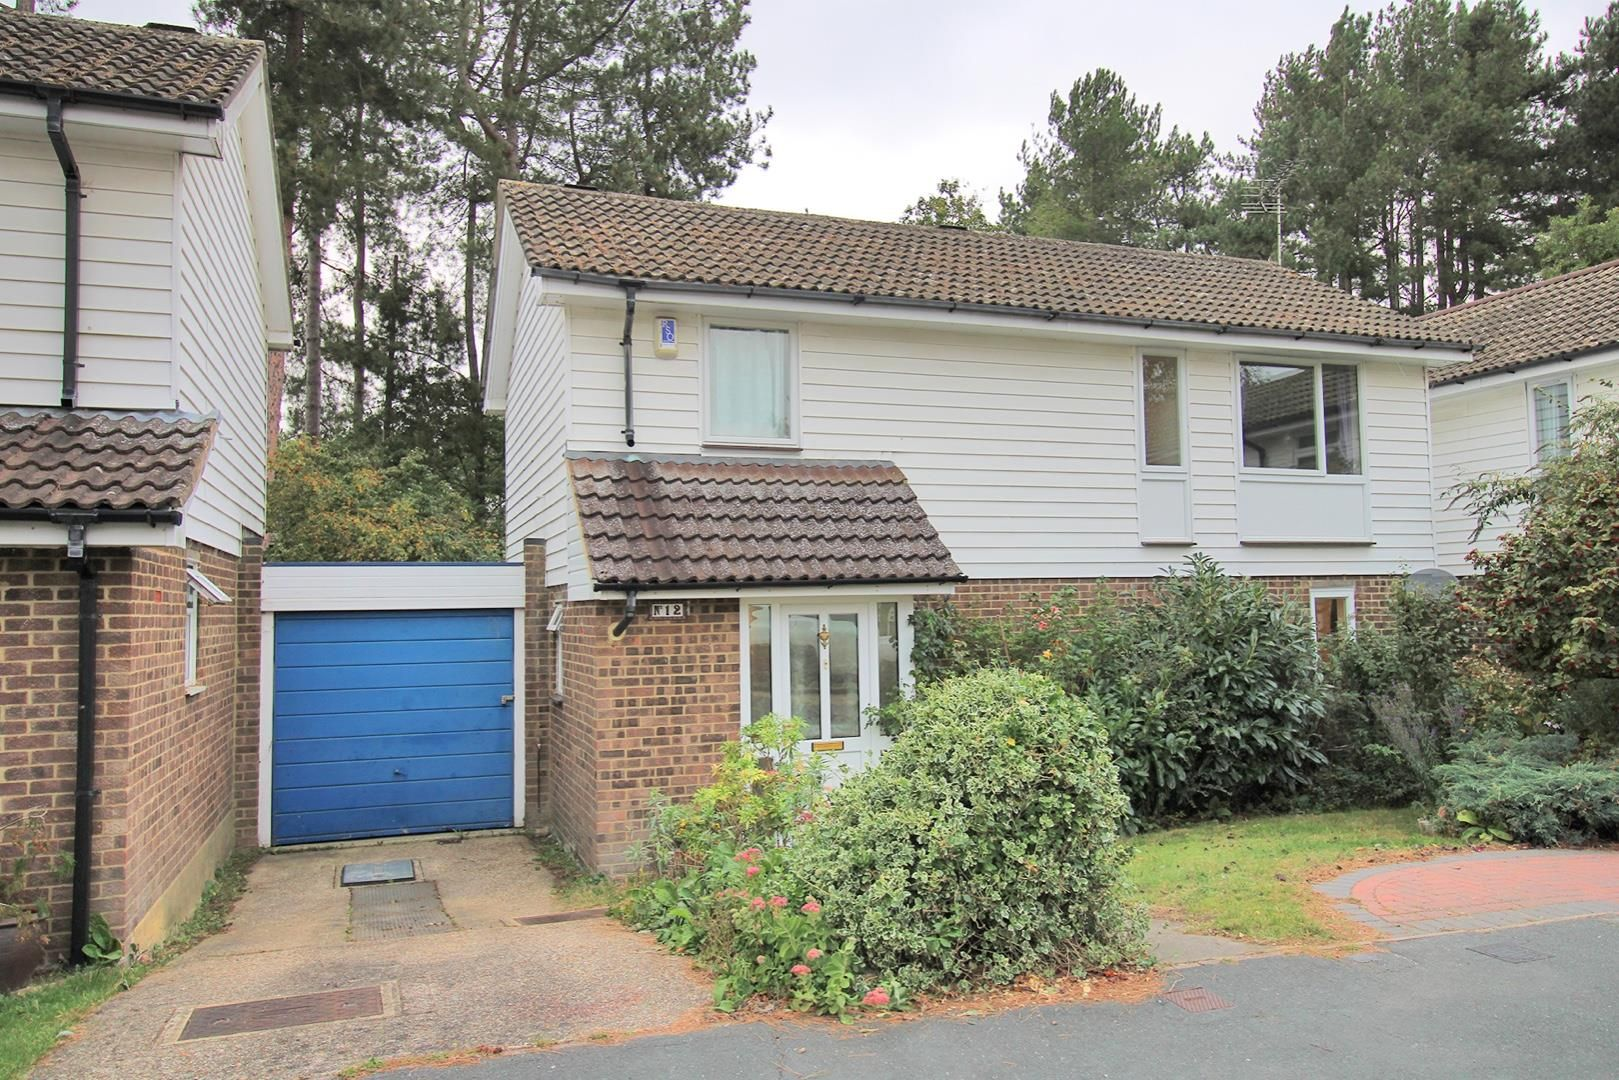 3 bed detached for sale in Wooden Hill, RG12